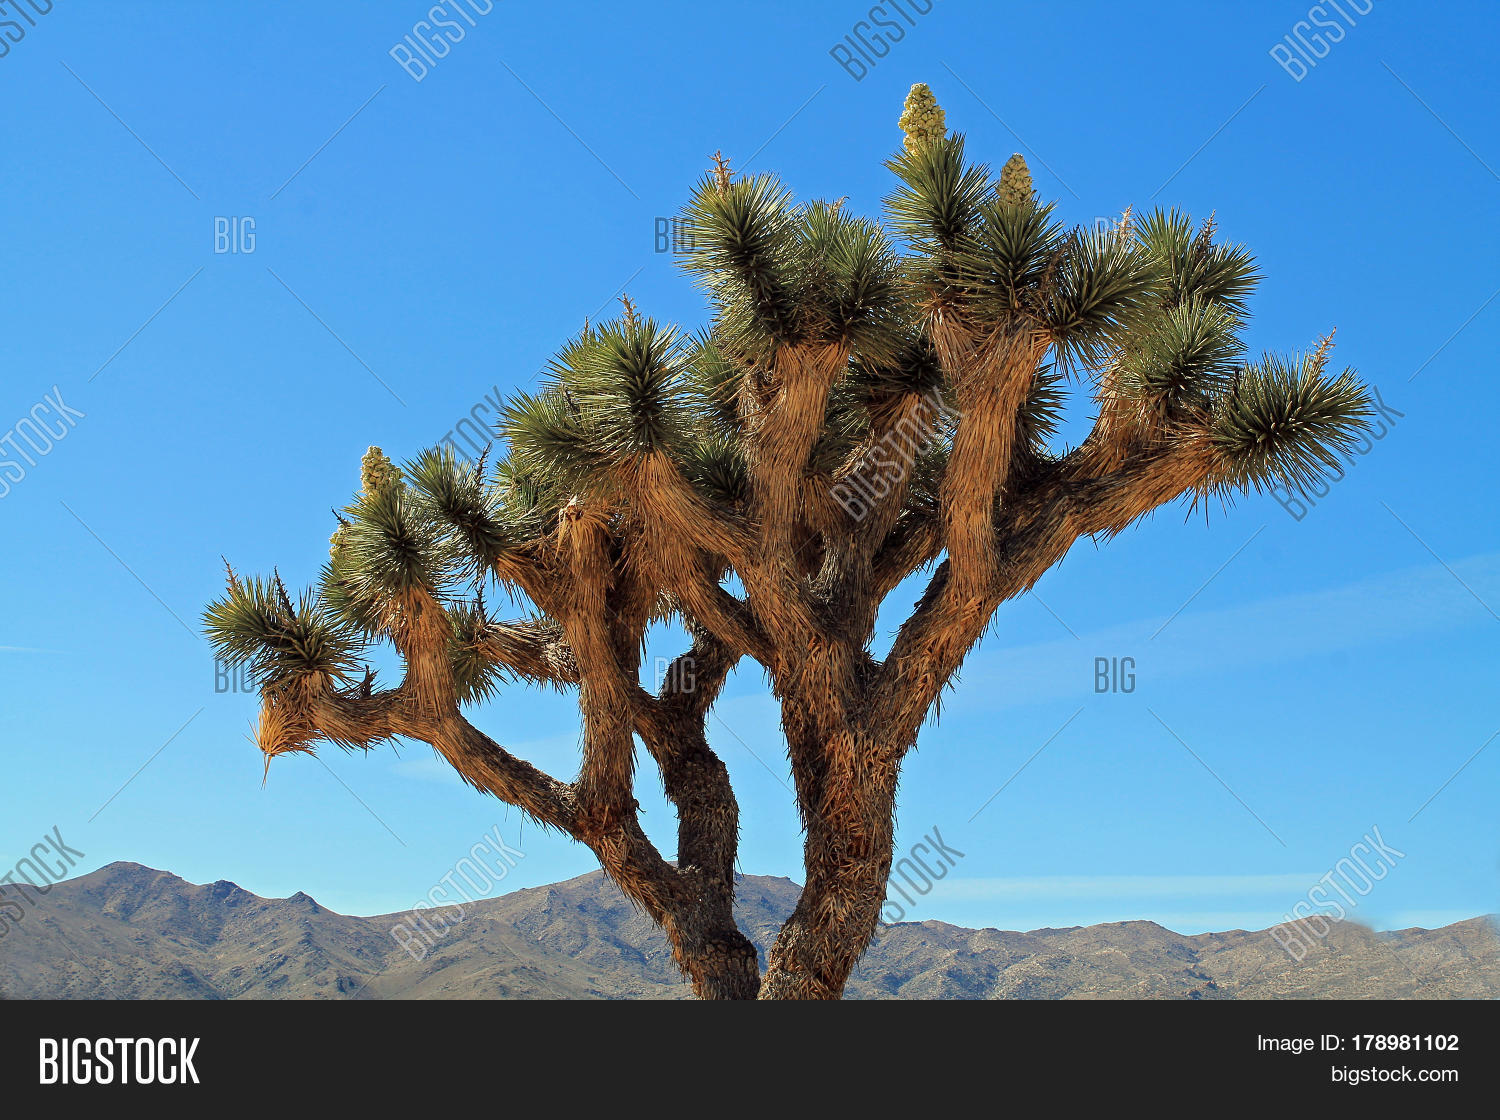 joshua tree buddhist singles The joshua tree is the fifth studio album by irish rock band u2 it produced the hit singles with or without you, i still haven't found what i'm looking for.